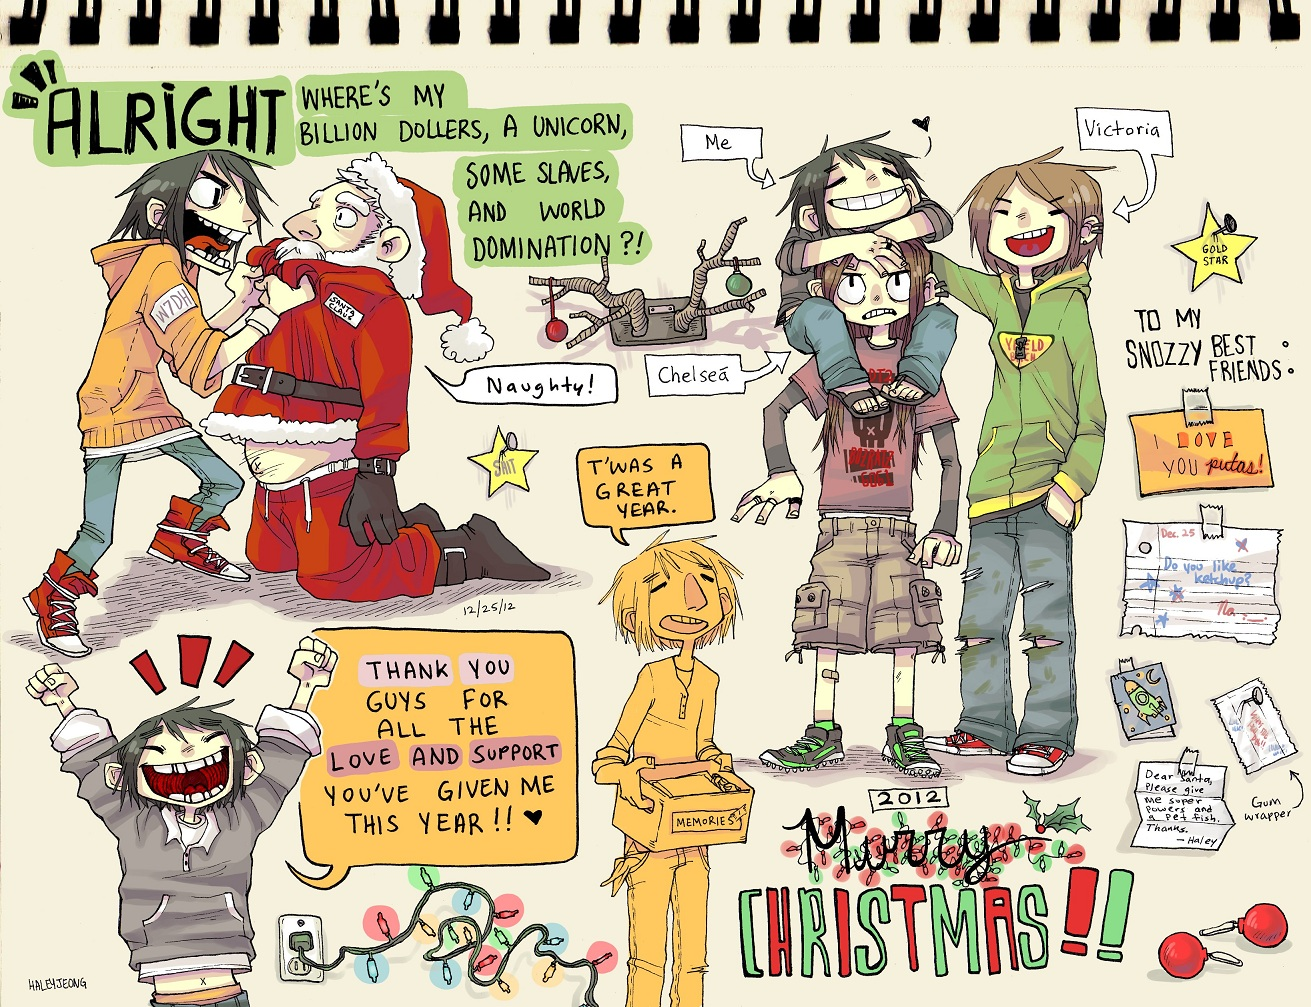 2012 Murry Christmas! by HJeojeo